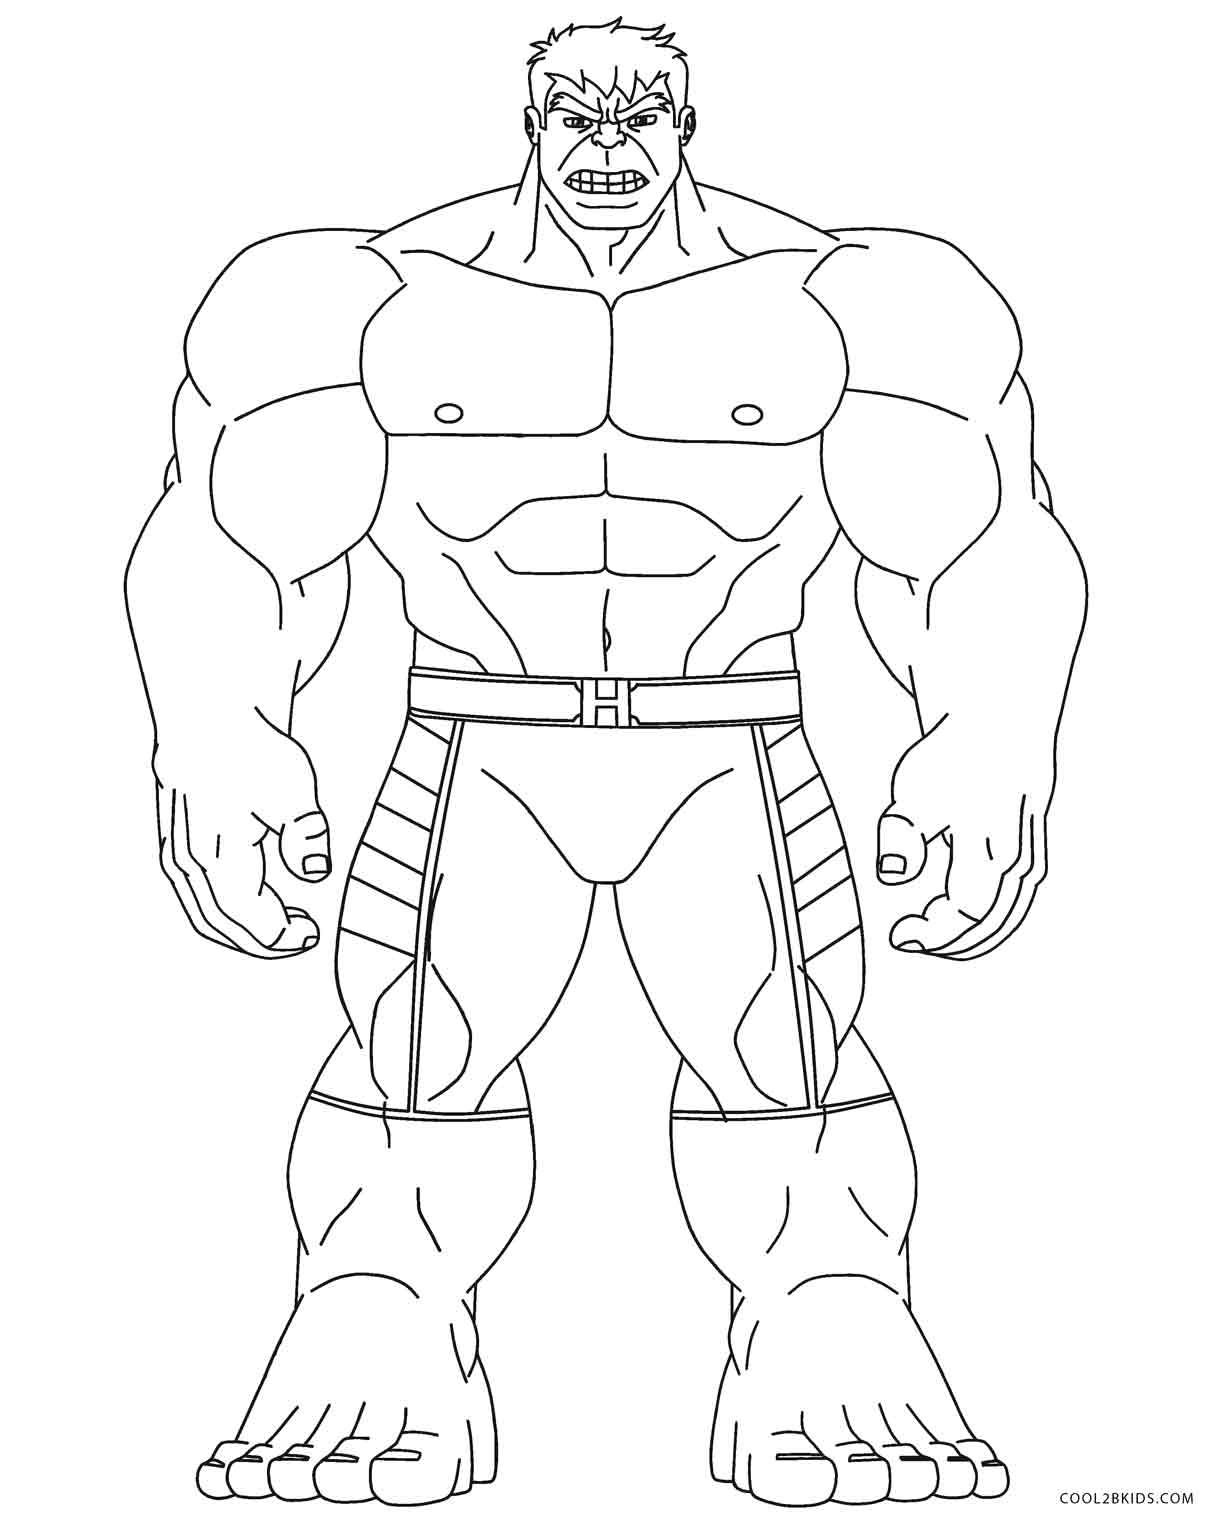 hulk outline for coloring incredible hulk coloring pages hulk coloring pages outline hulk coloring for